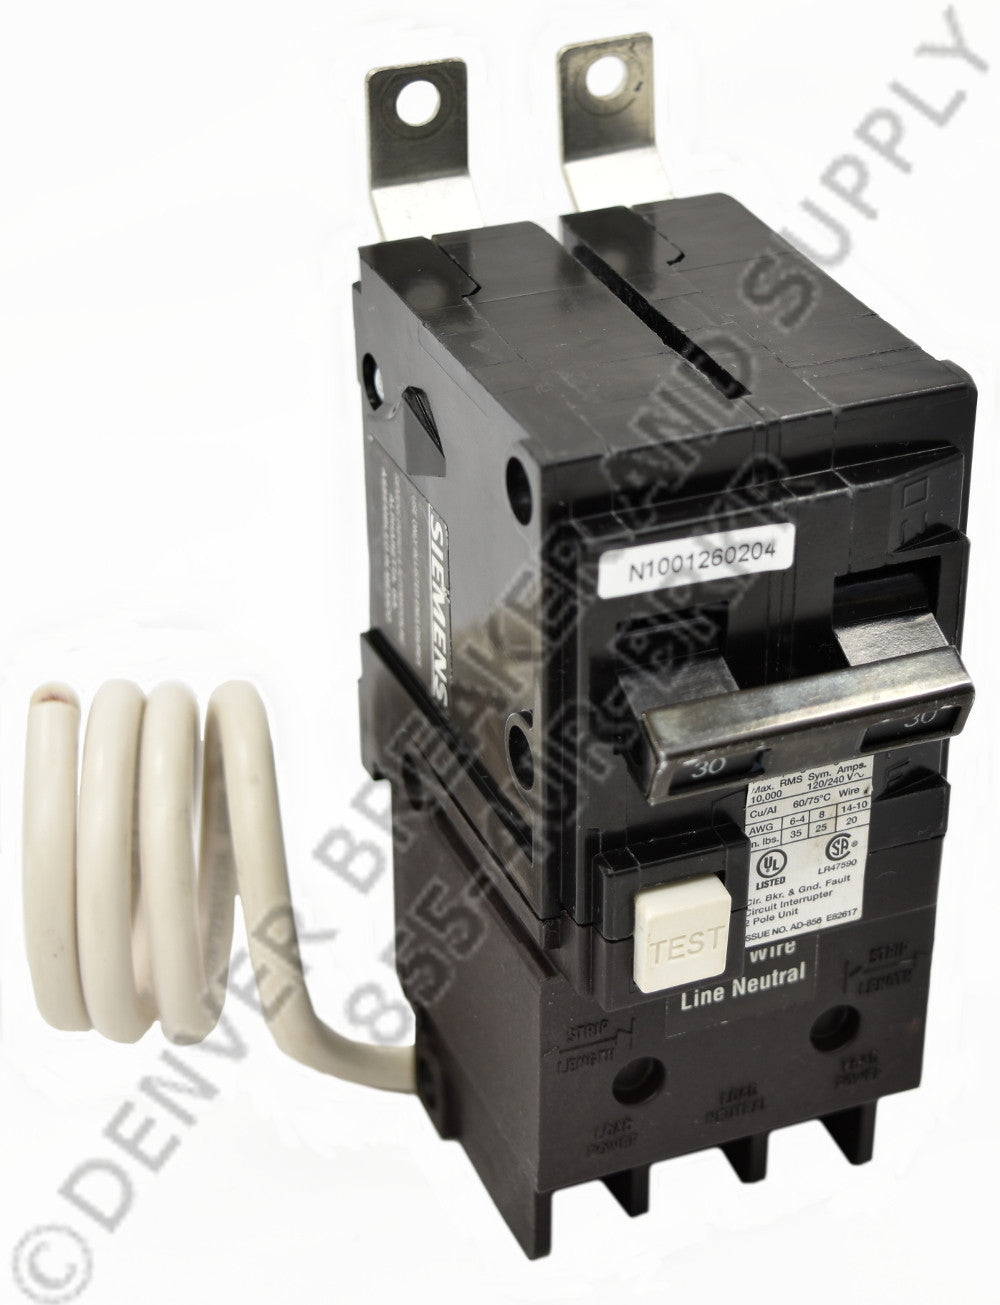 Siemens BF215 Circuit Breakers